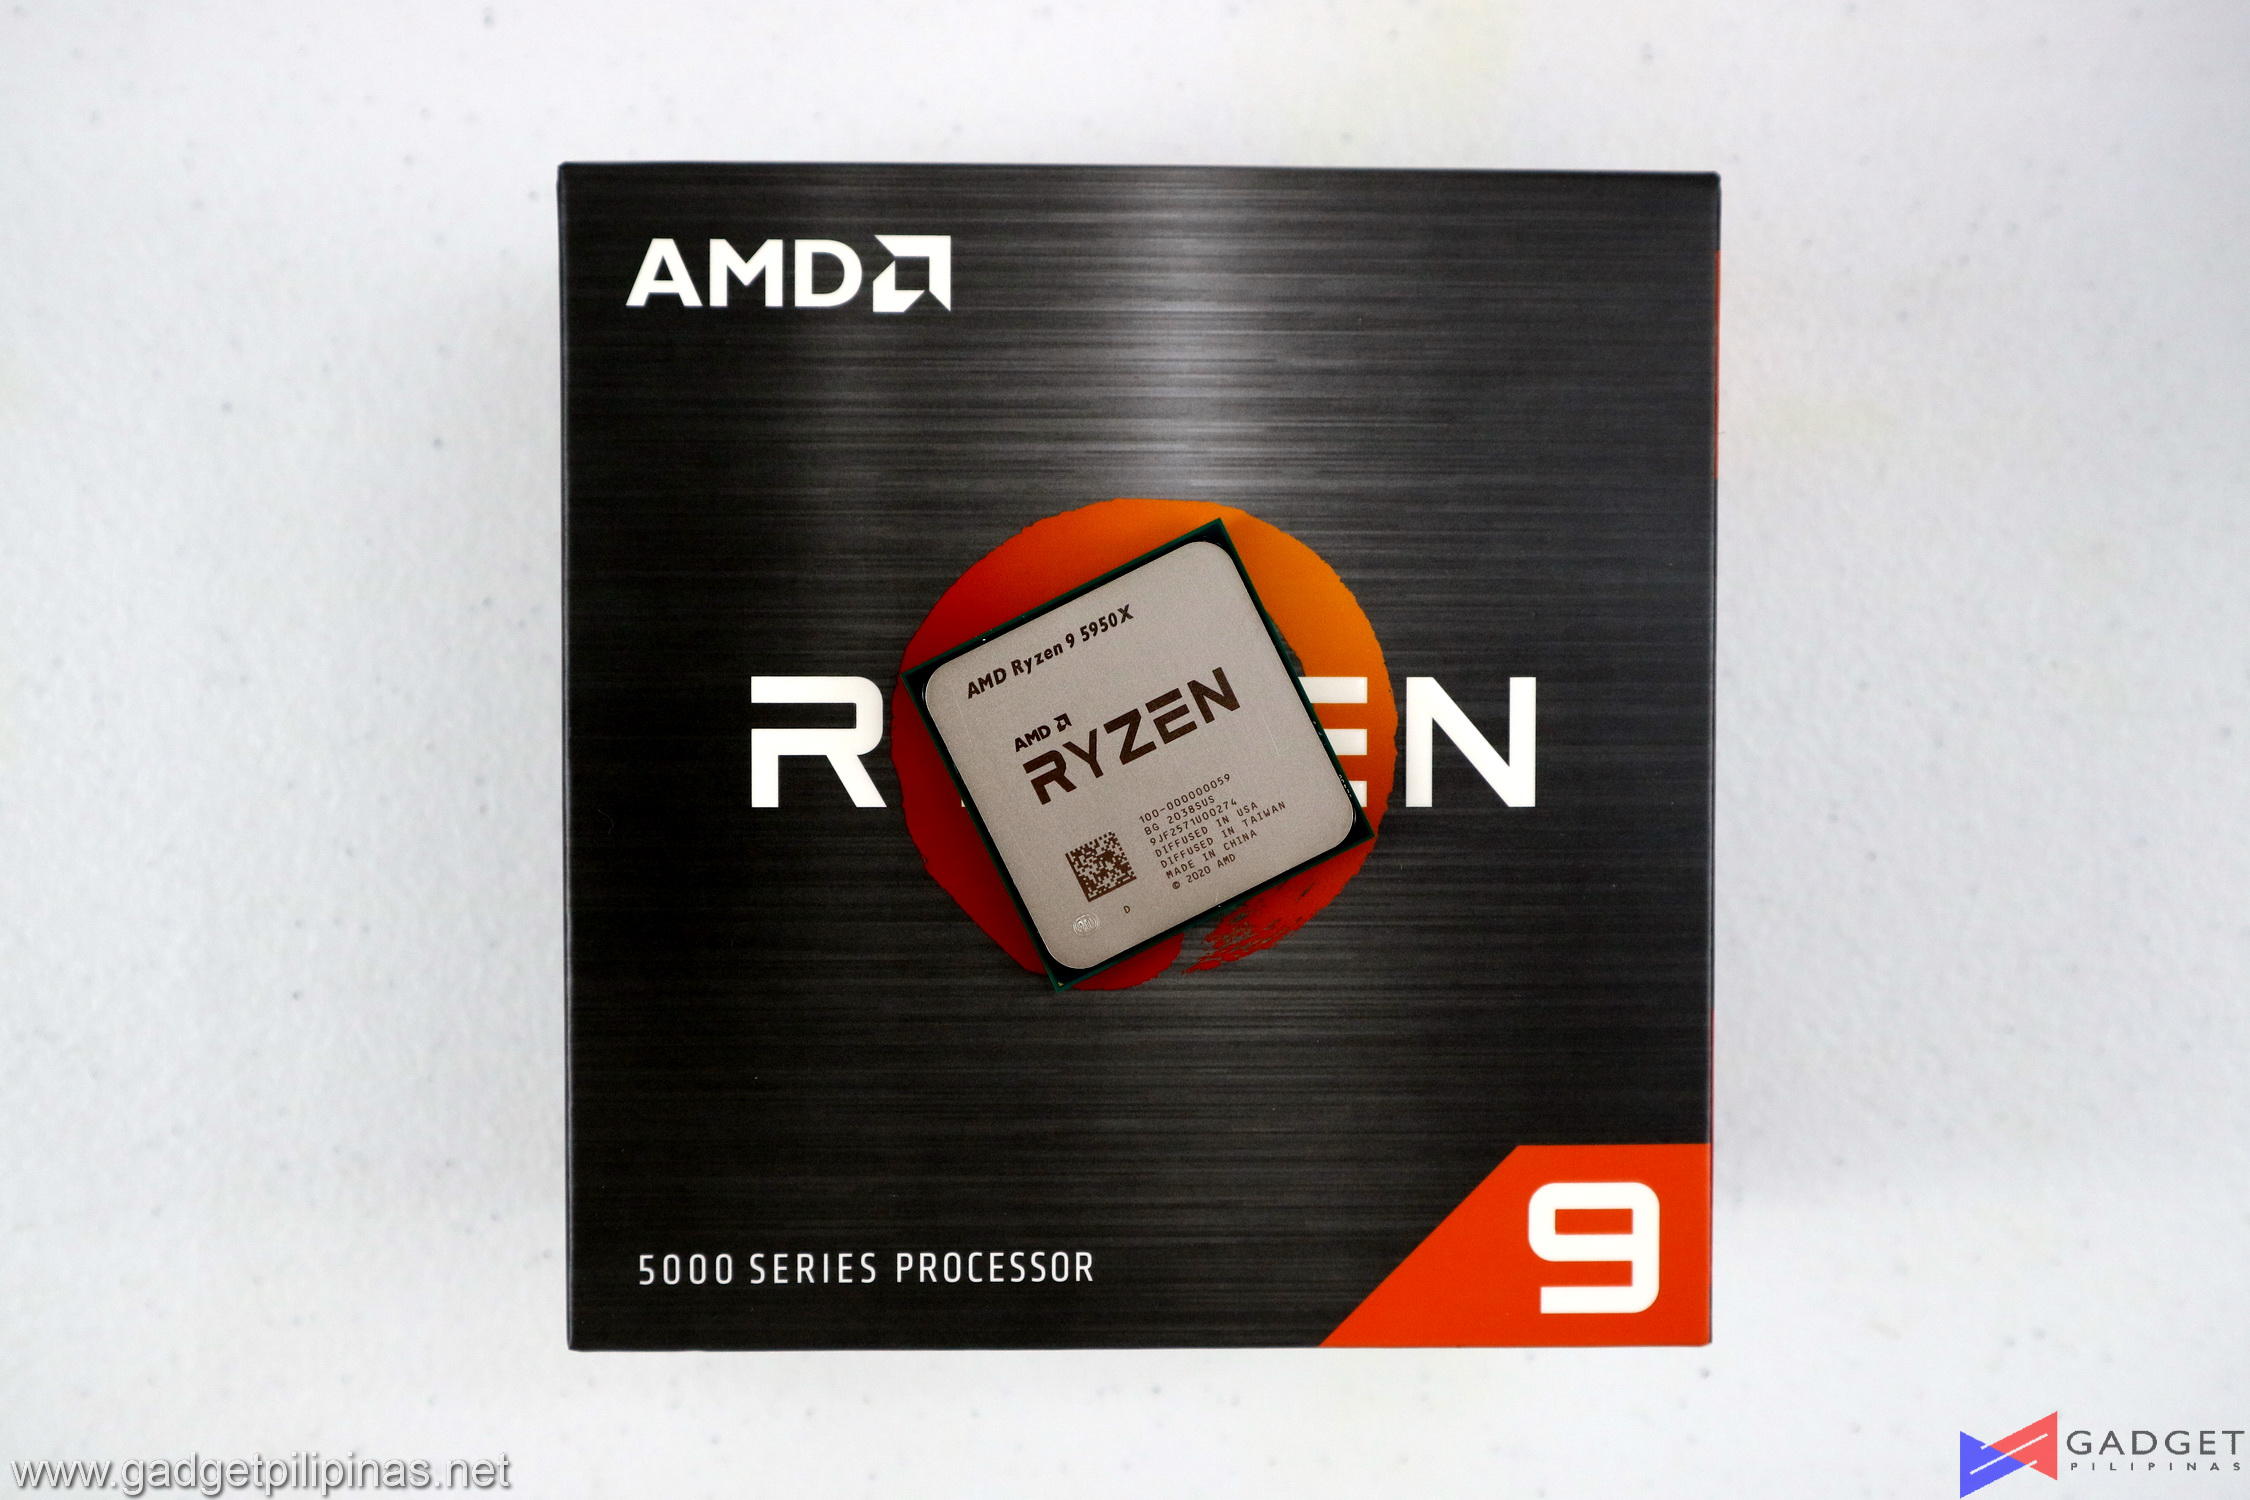 AMD Ryzen 9 5950X Review - AMD Ryzen 9 5950X PH Price Review